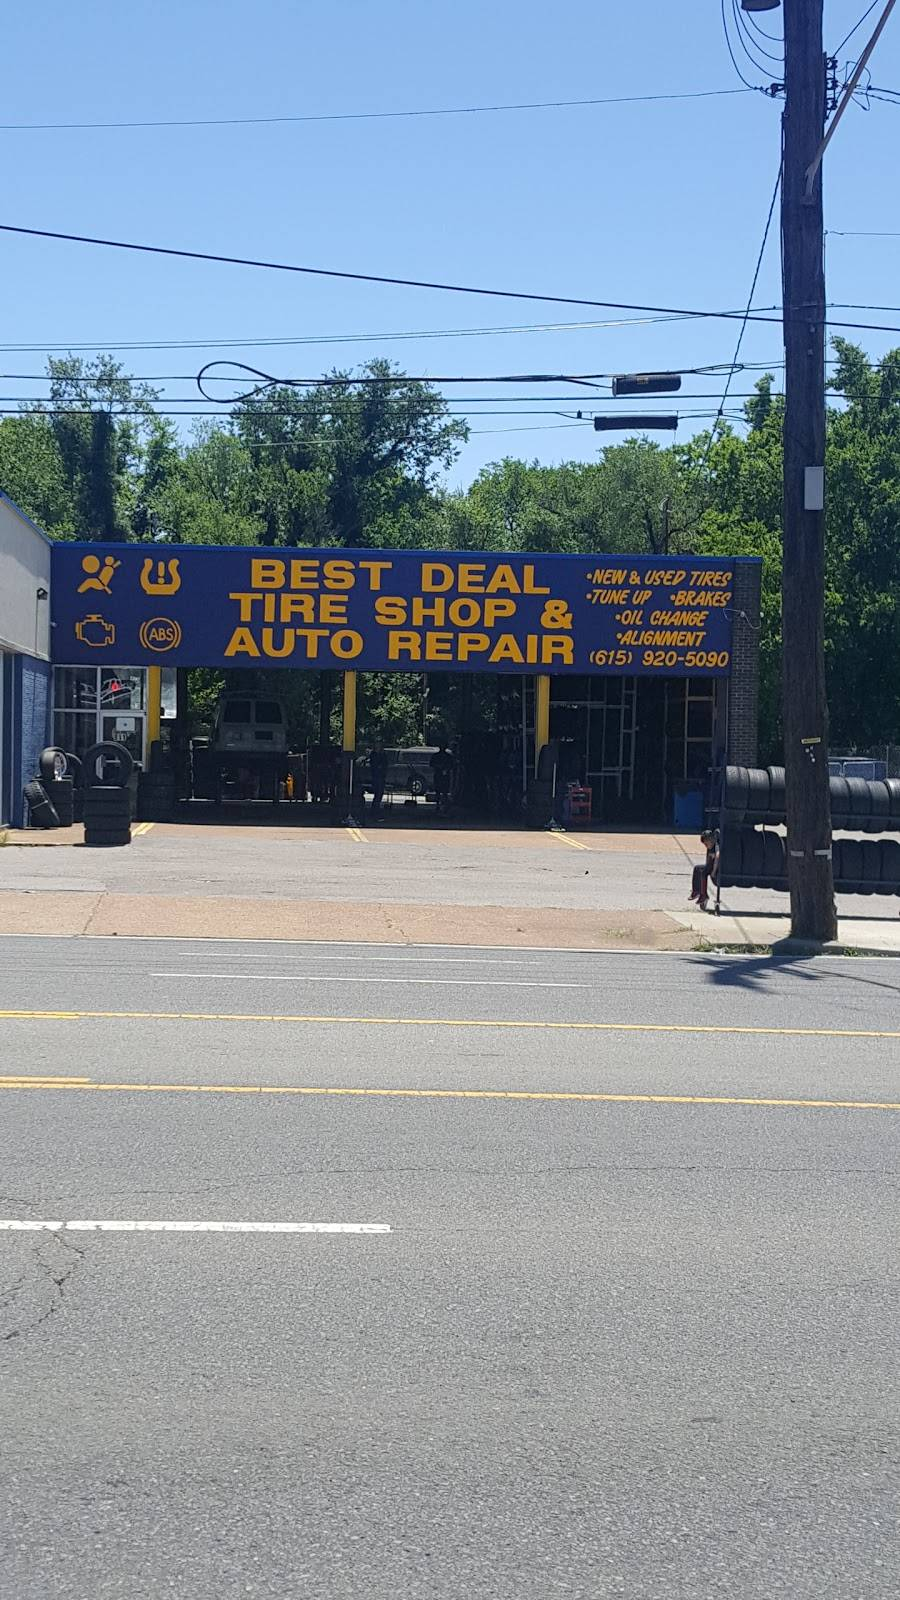 Best deal auto sales and service inc - car repair    Photo 6 of 6   Address: 811 Gallatin Pike S, Madison, TN 37115, USA   Phone: (615) 738-6049